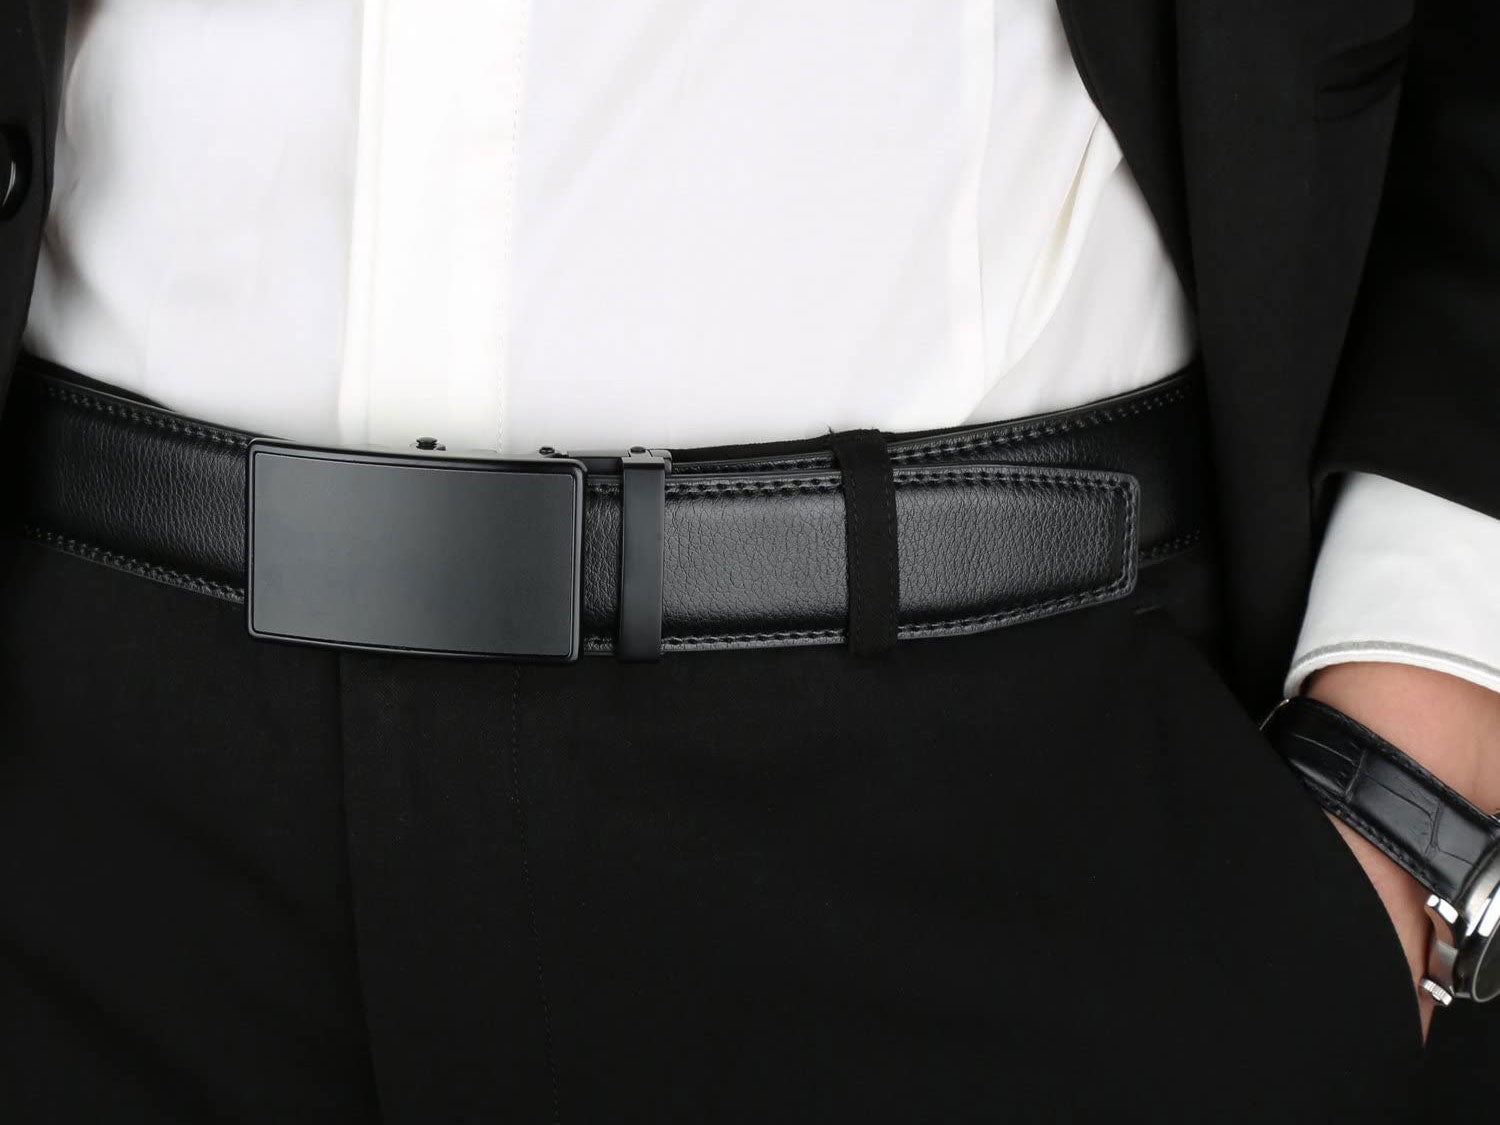 Close up of person in a black suit with a belt